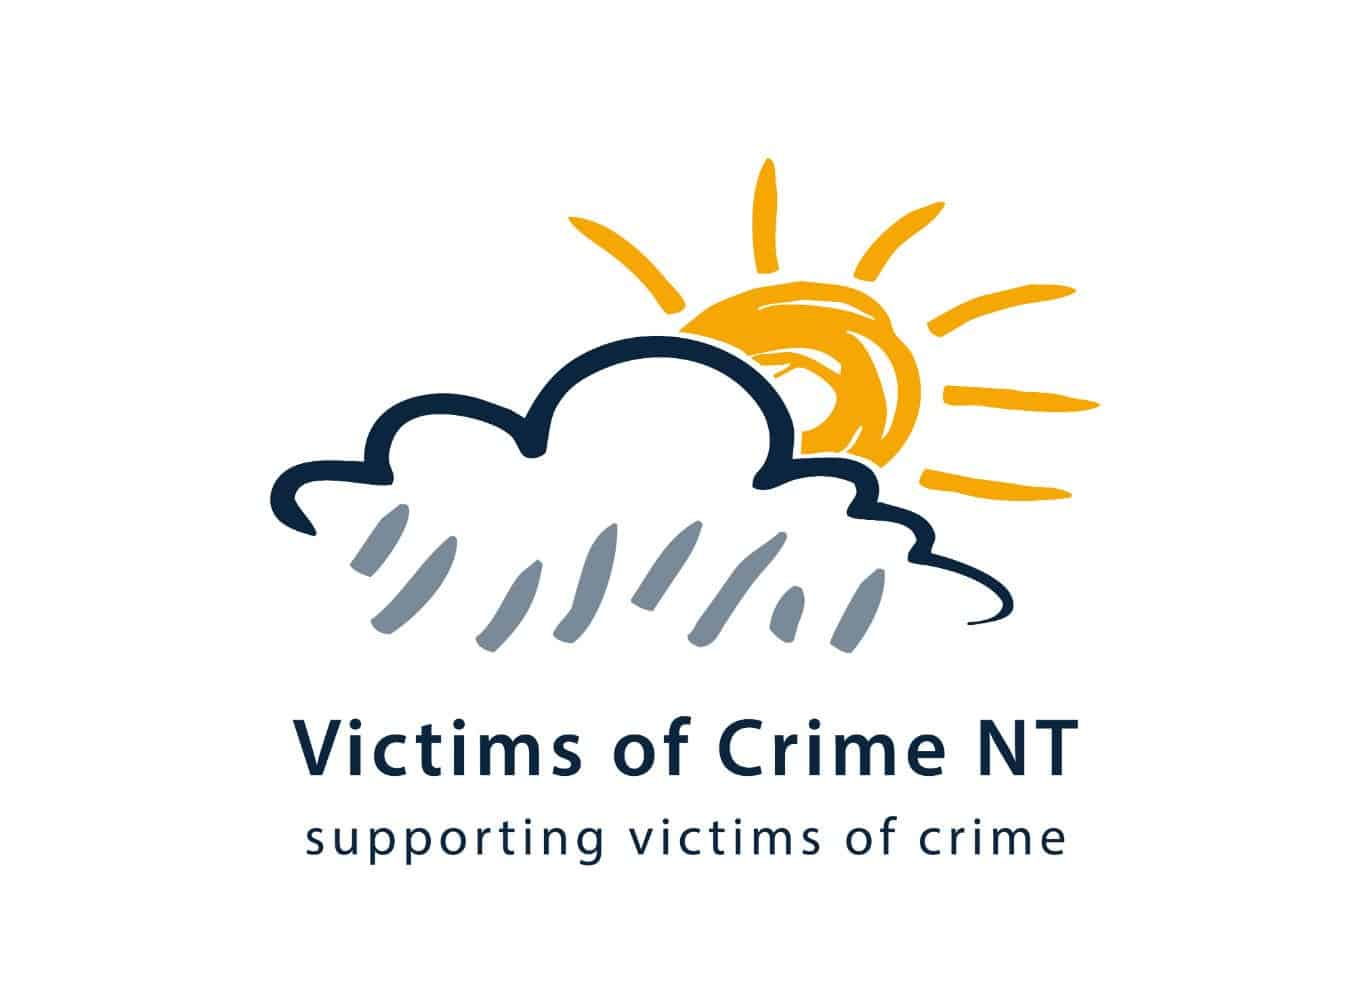 Combating Crime With Lighting in NT